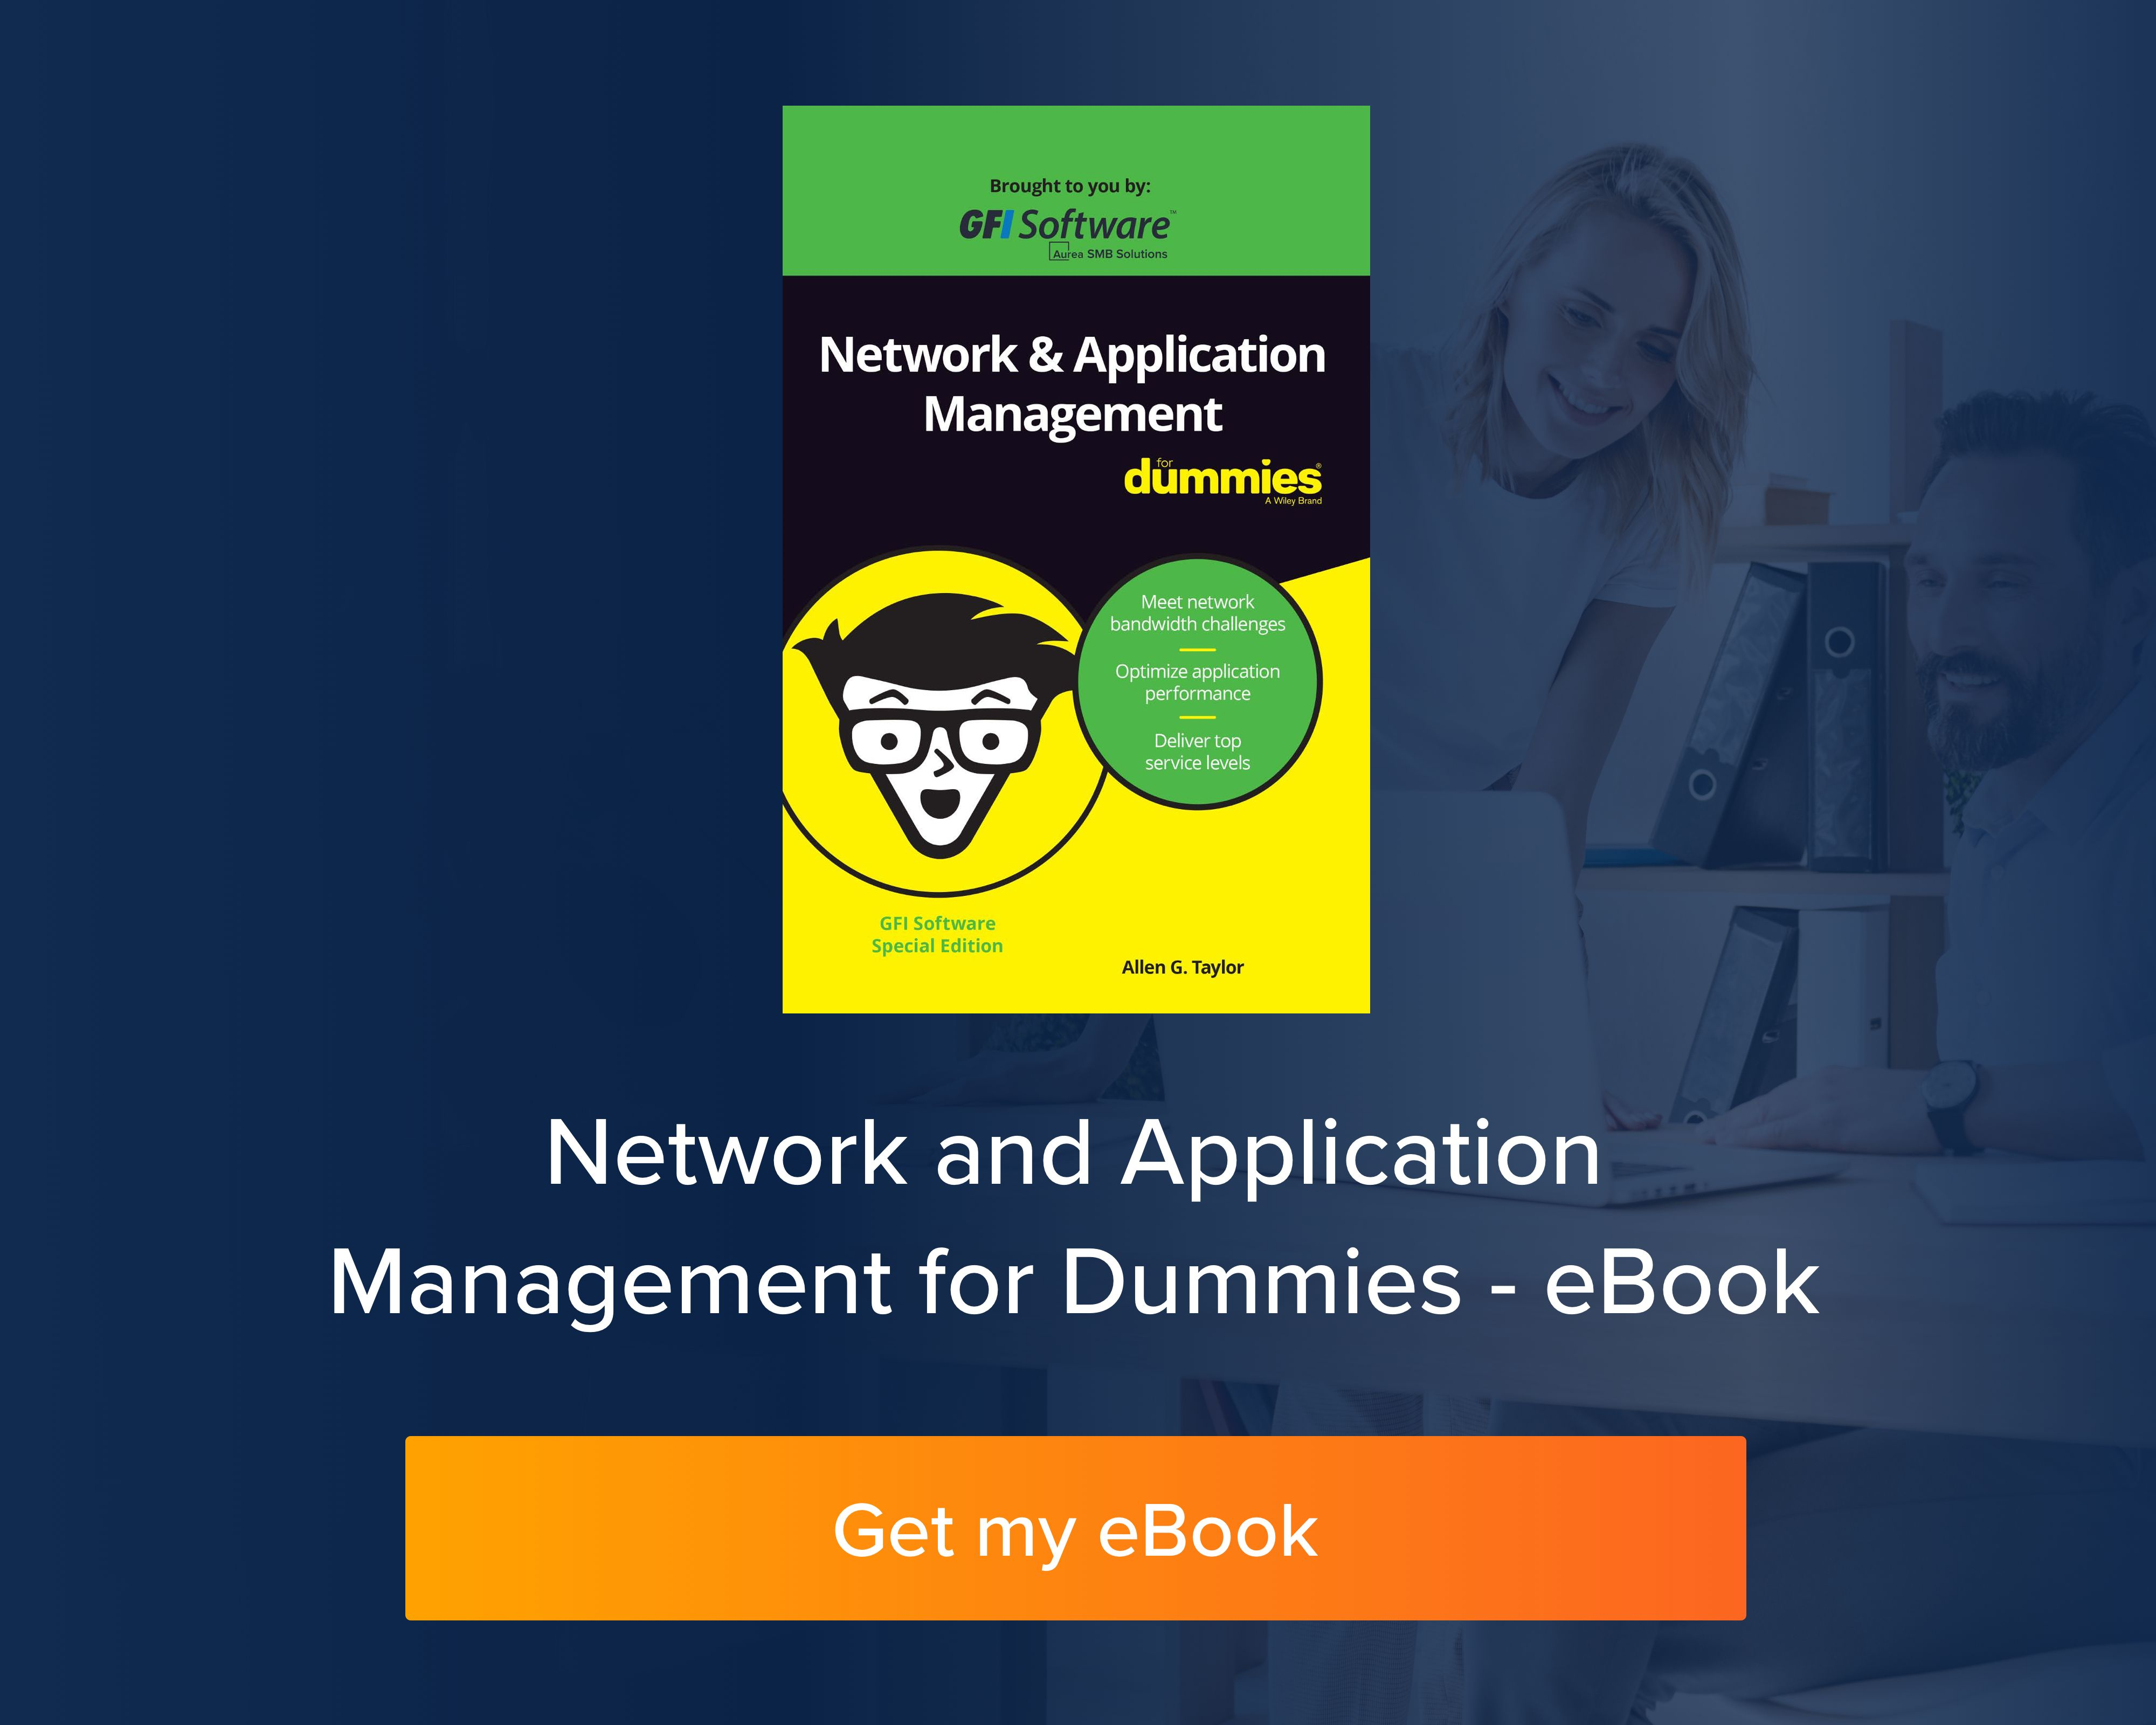 exinda Network and Application Management for Dummies - eBook